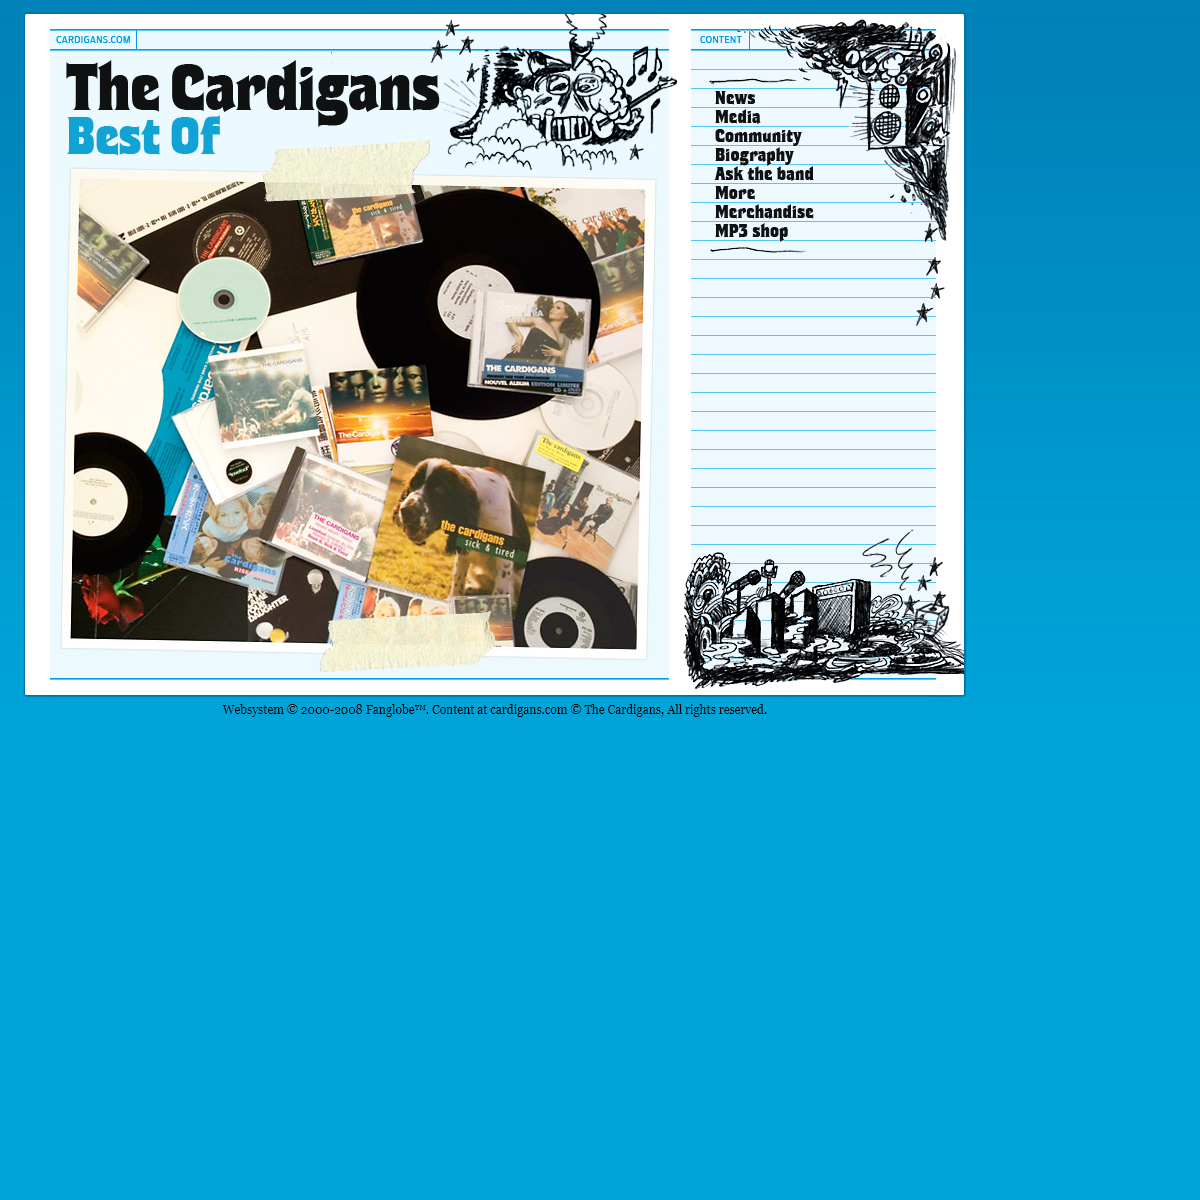 The Cardigans - Official website